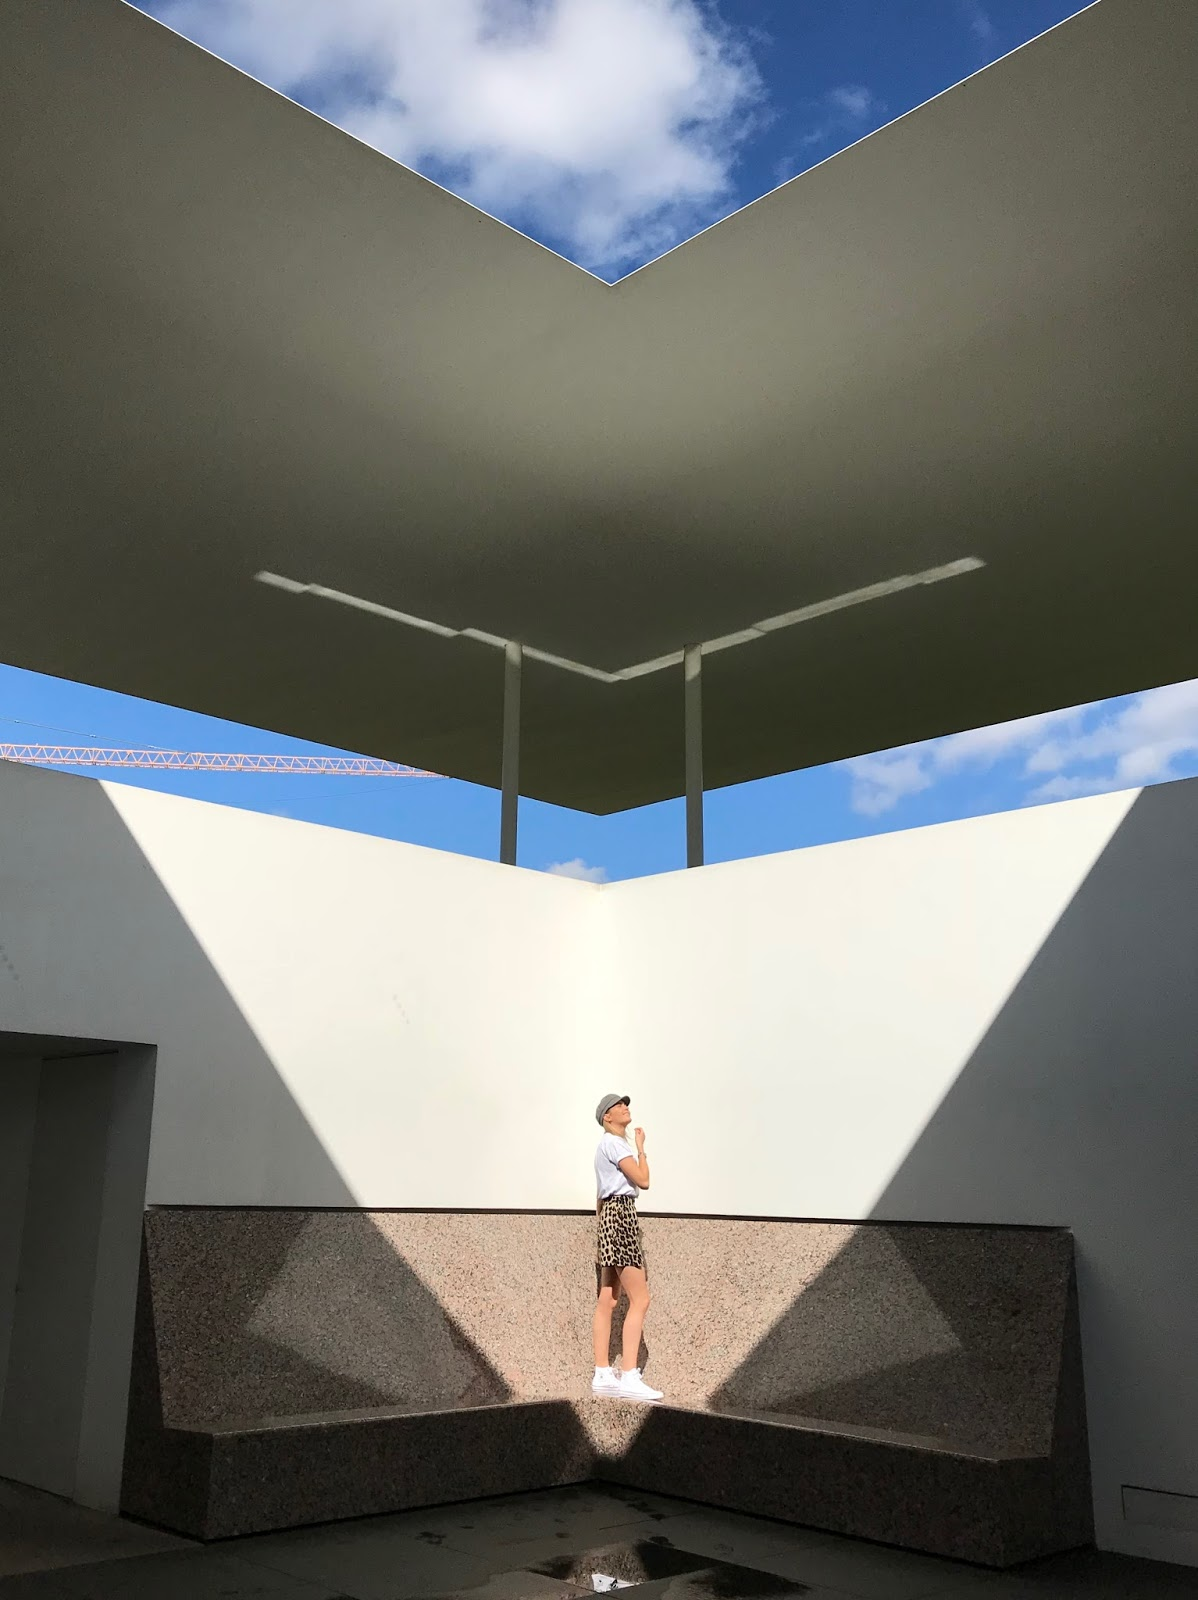 James Turrell Skyspace at Rice University